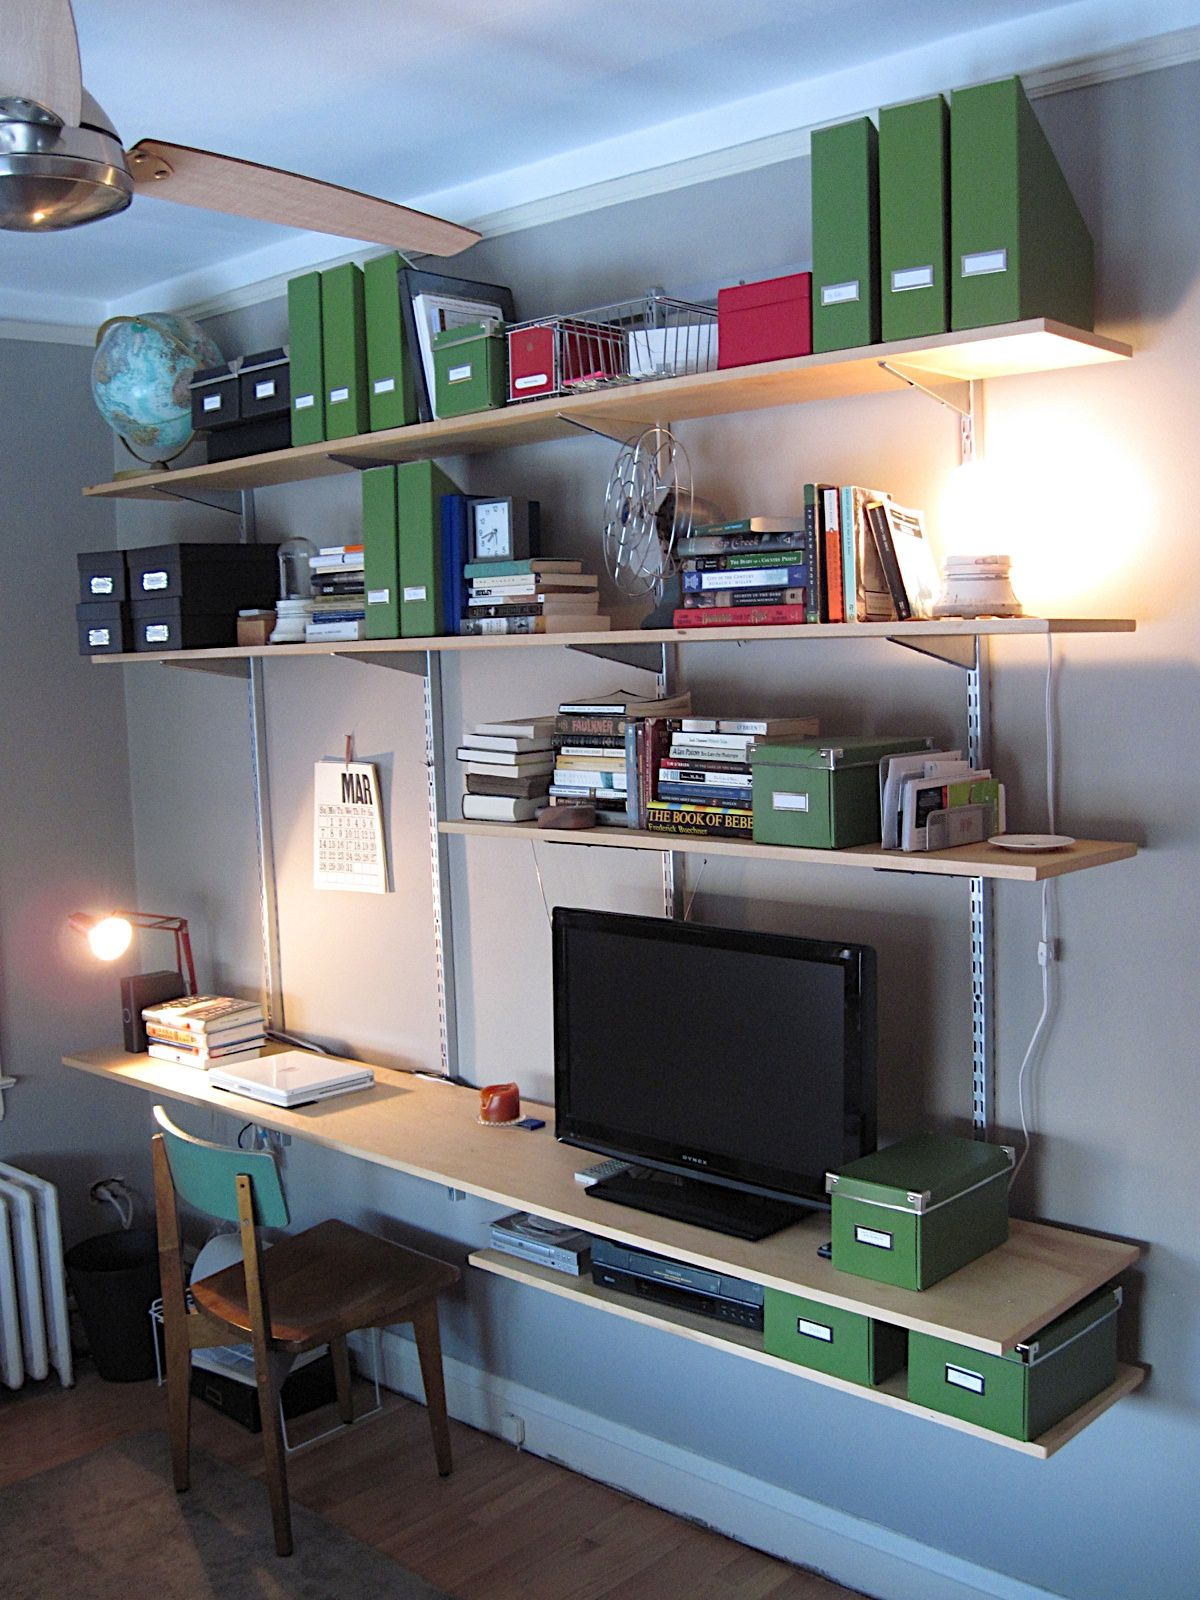 How to build your own modular shelving unit plywood and for Elfa desk system